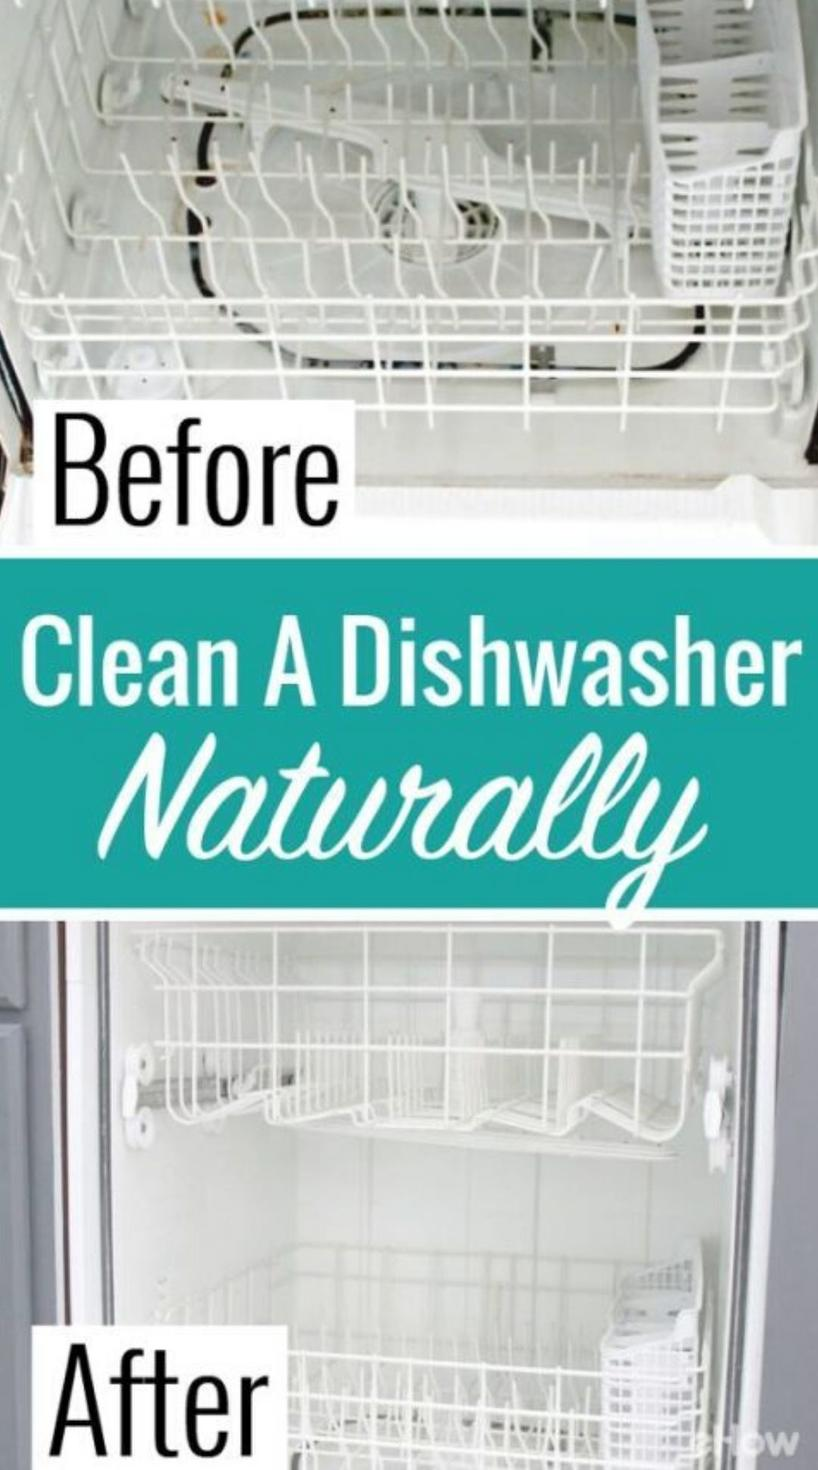 Life Hacks, Cleaning hacks, Household cleaning, Household cleaning hacks, Object cleaning hacks, Cleaning solutions, Deep cleaning tricks, Deep cleaning, Deep cleaning solutions